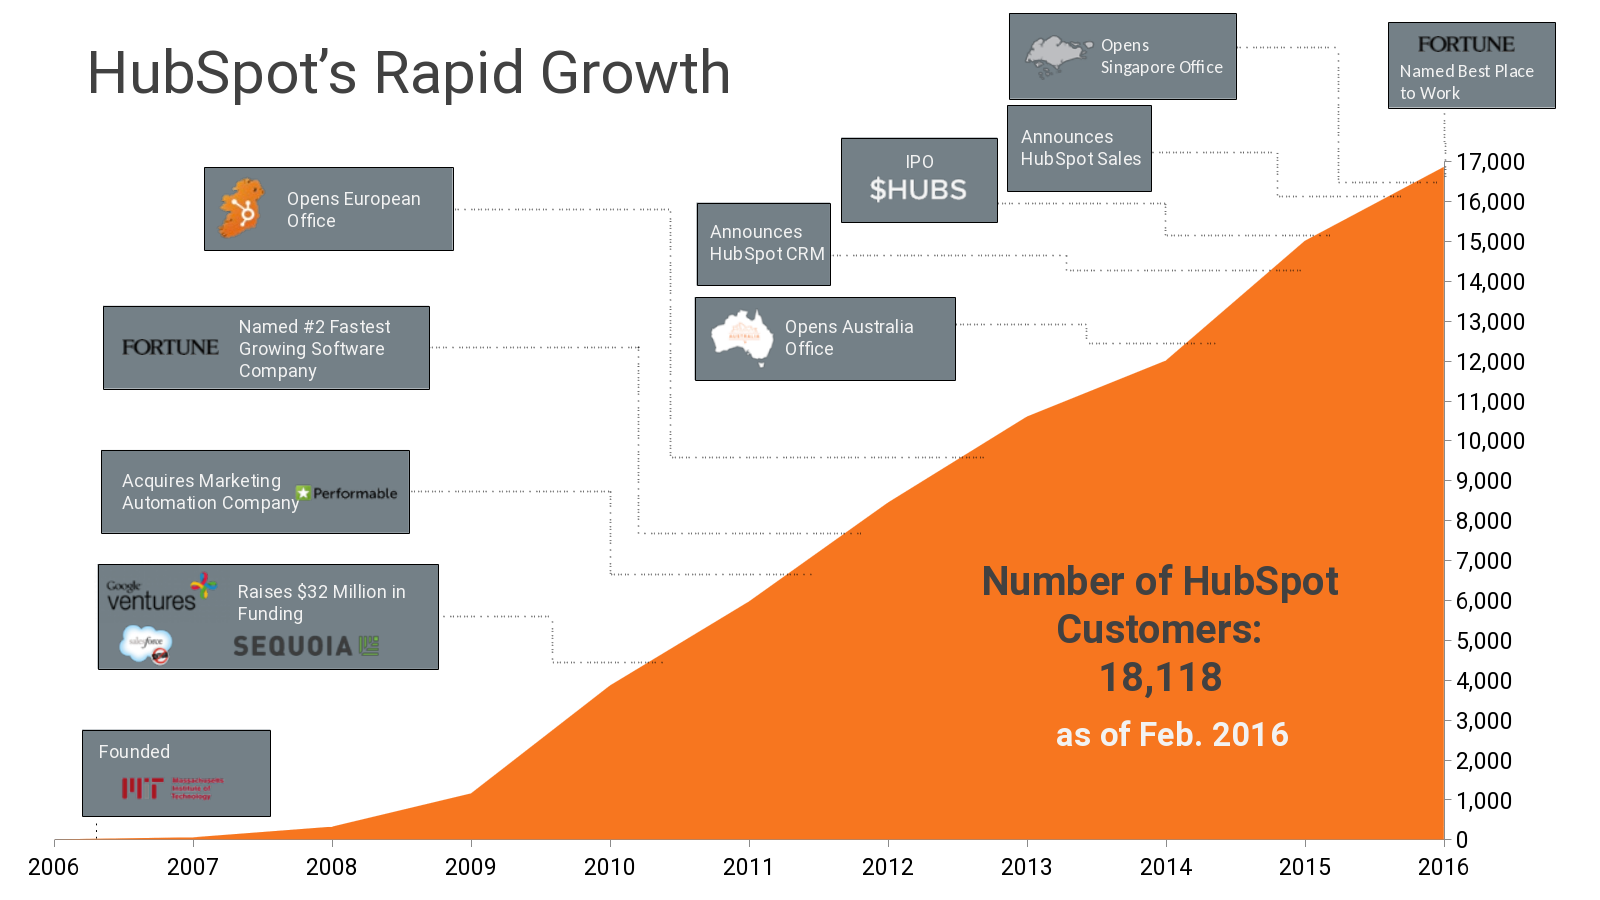 Hubspot_rapid_growth.png